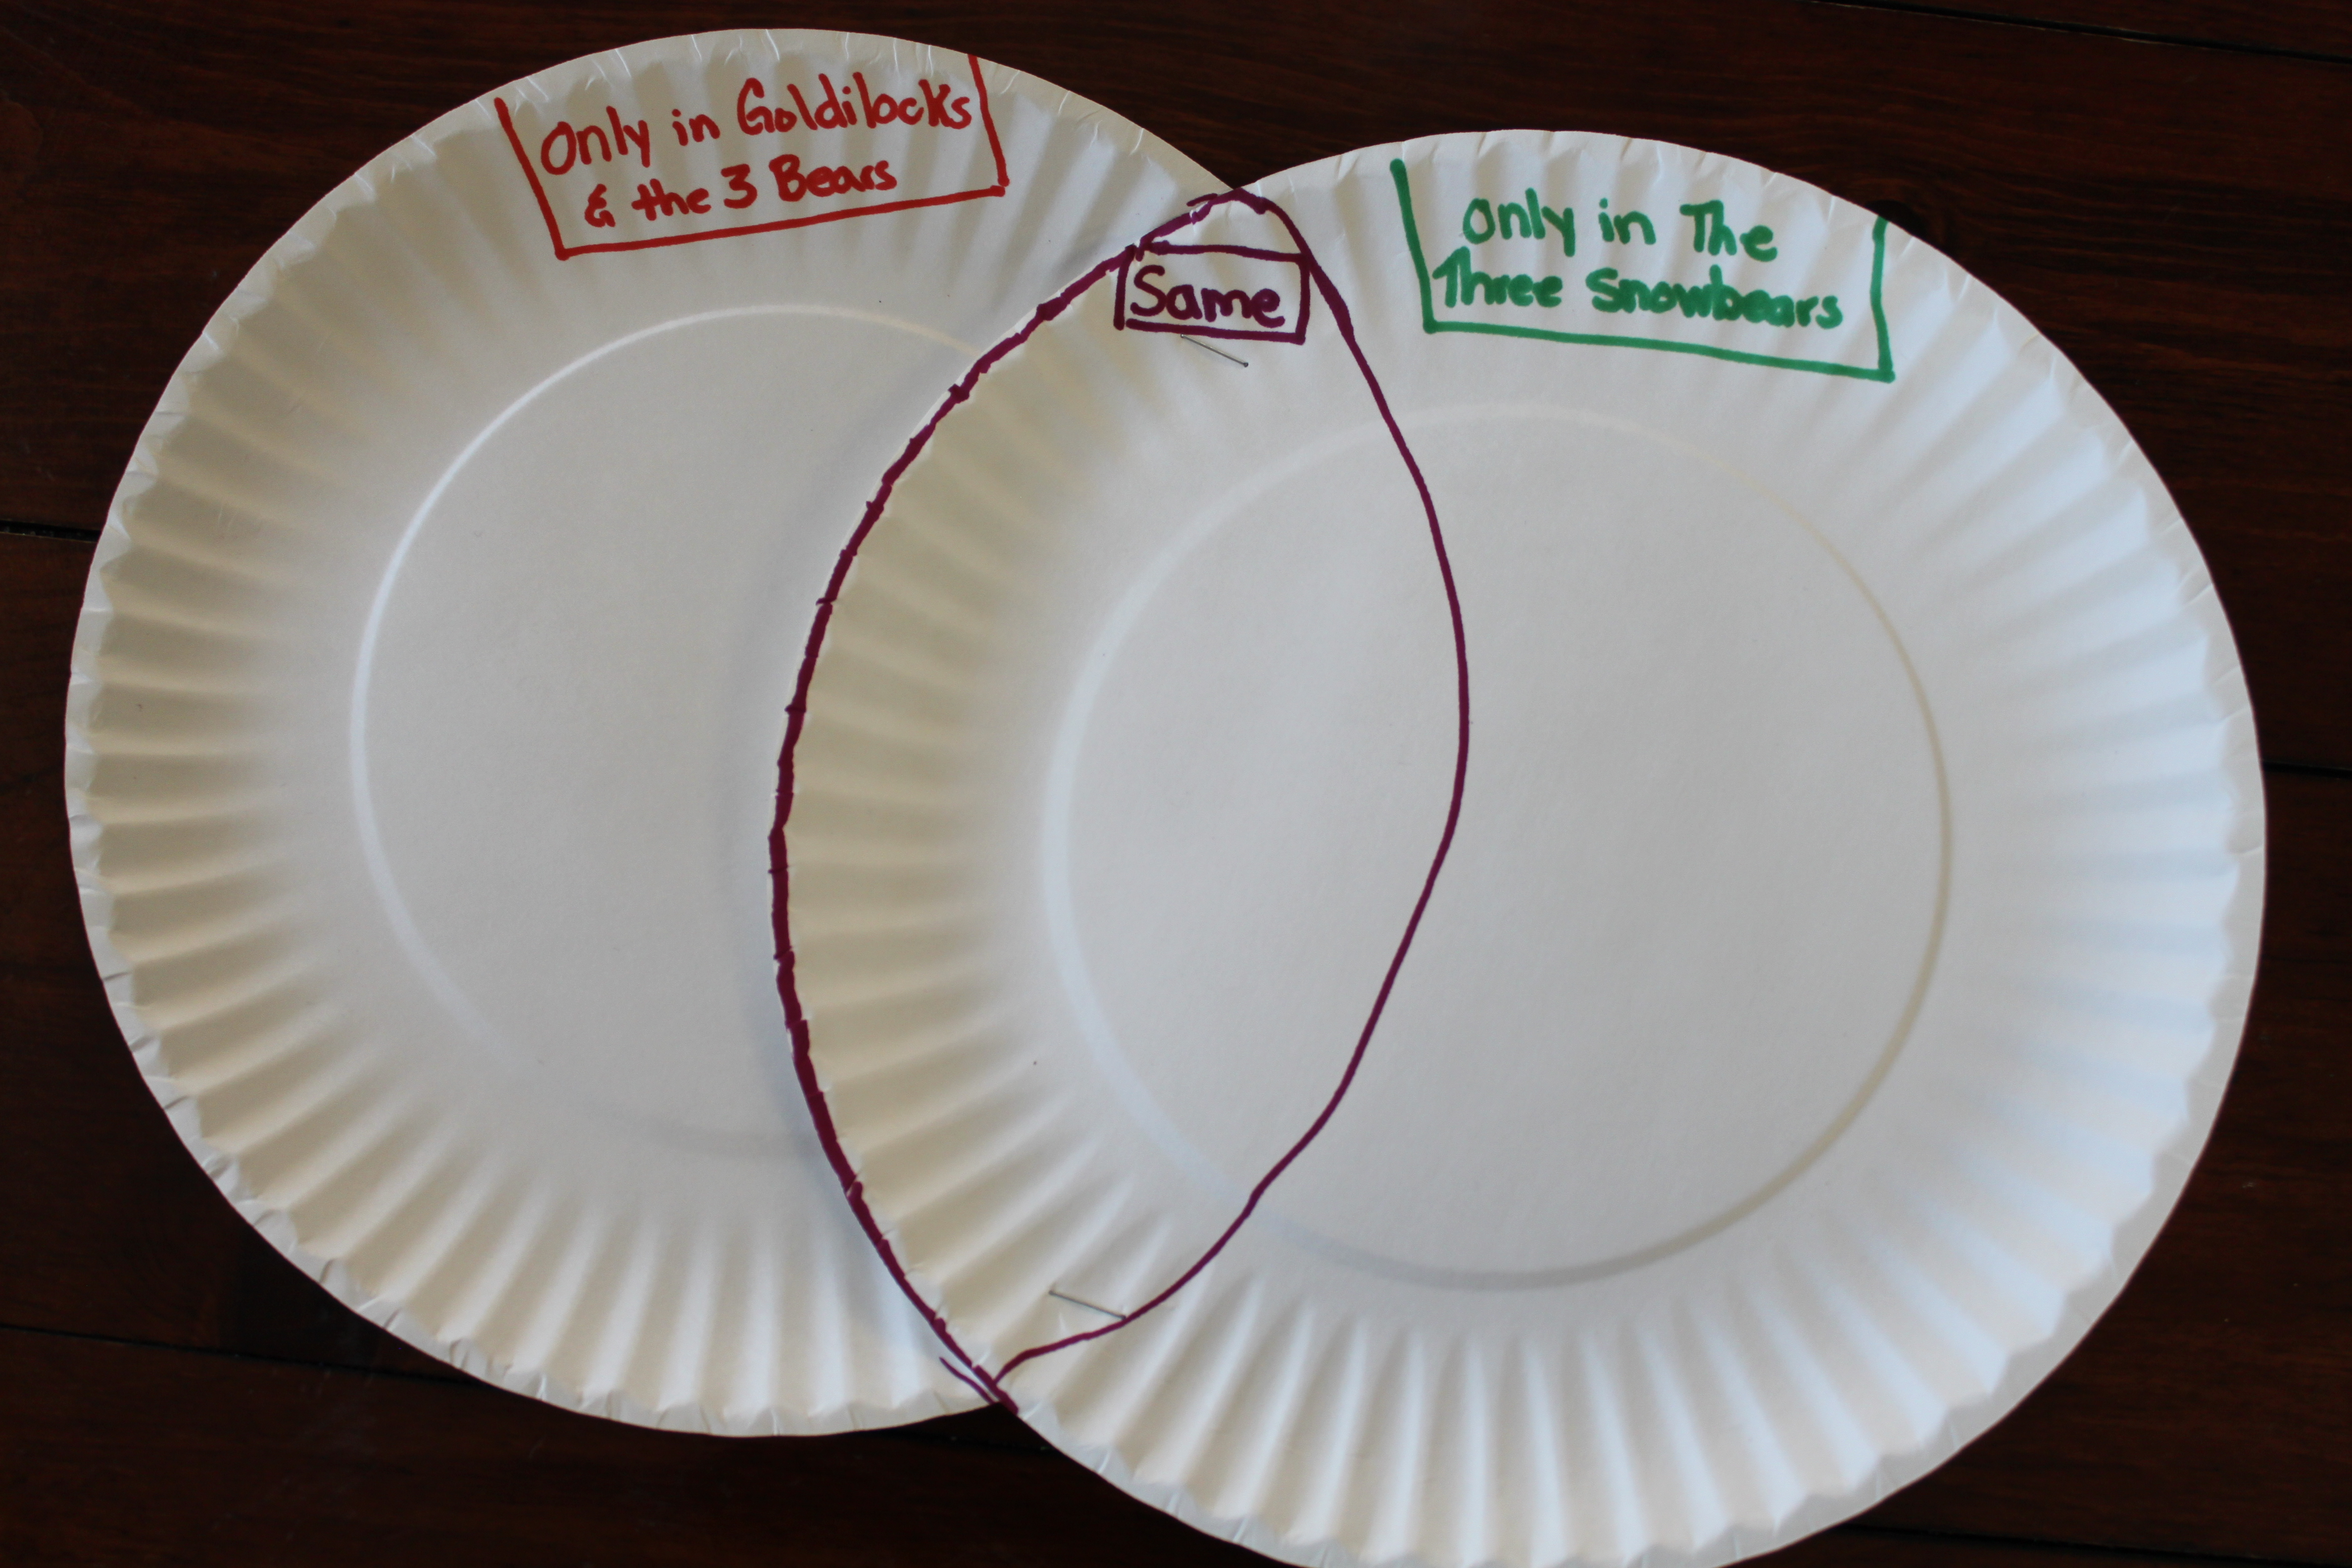 Paper Plate Venn Diagram For Compare And Contrast, Paper, Free Image ...